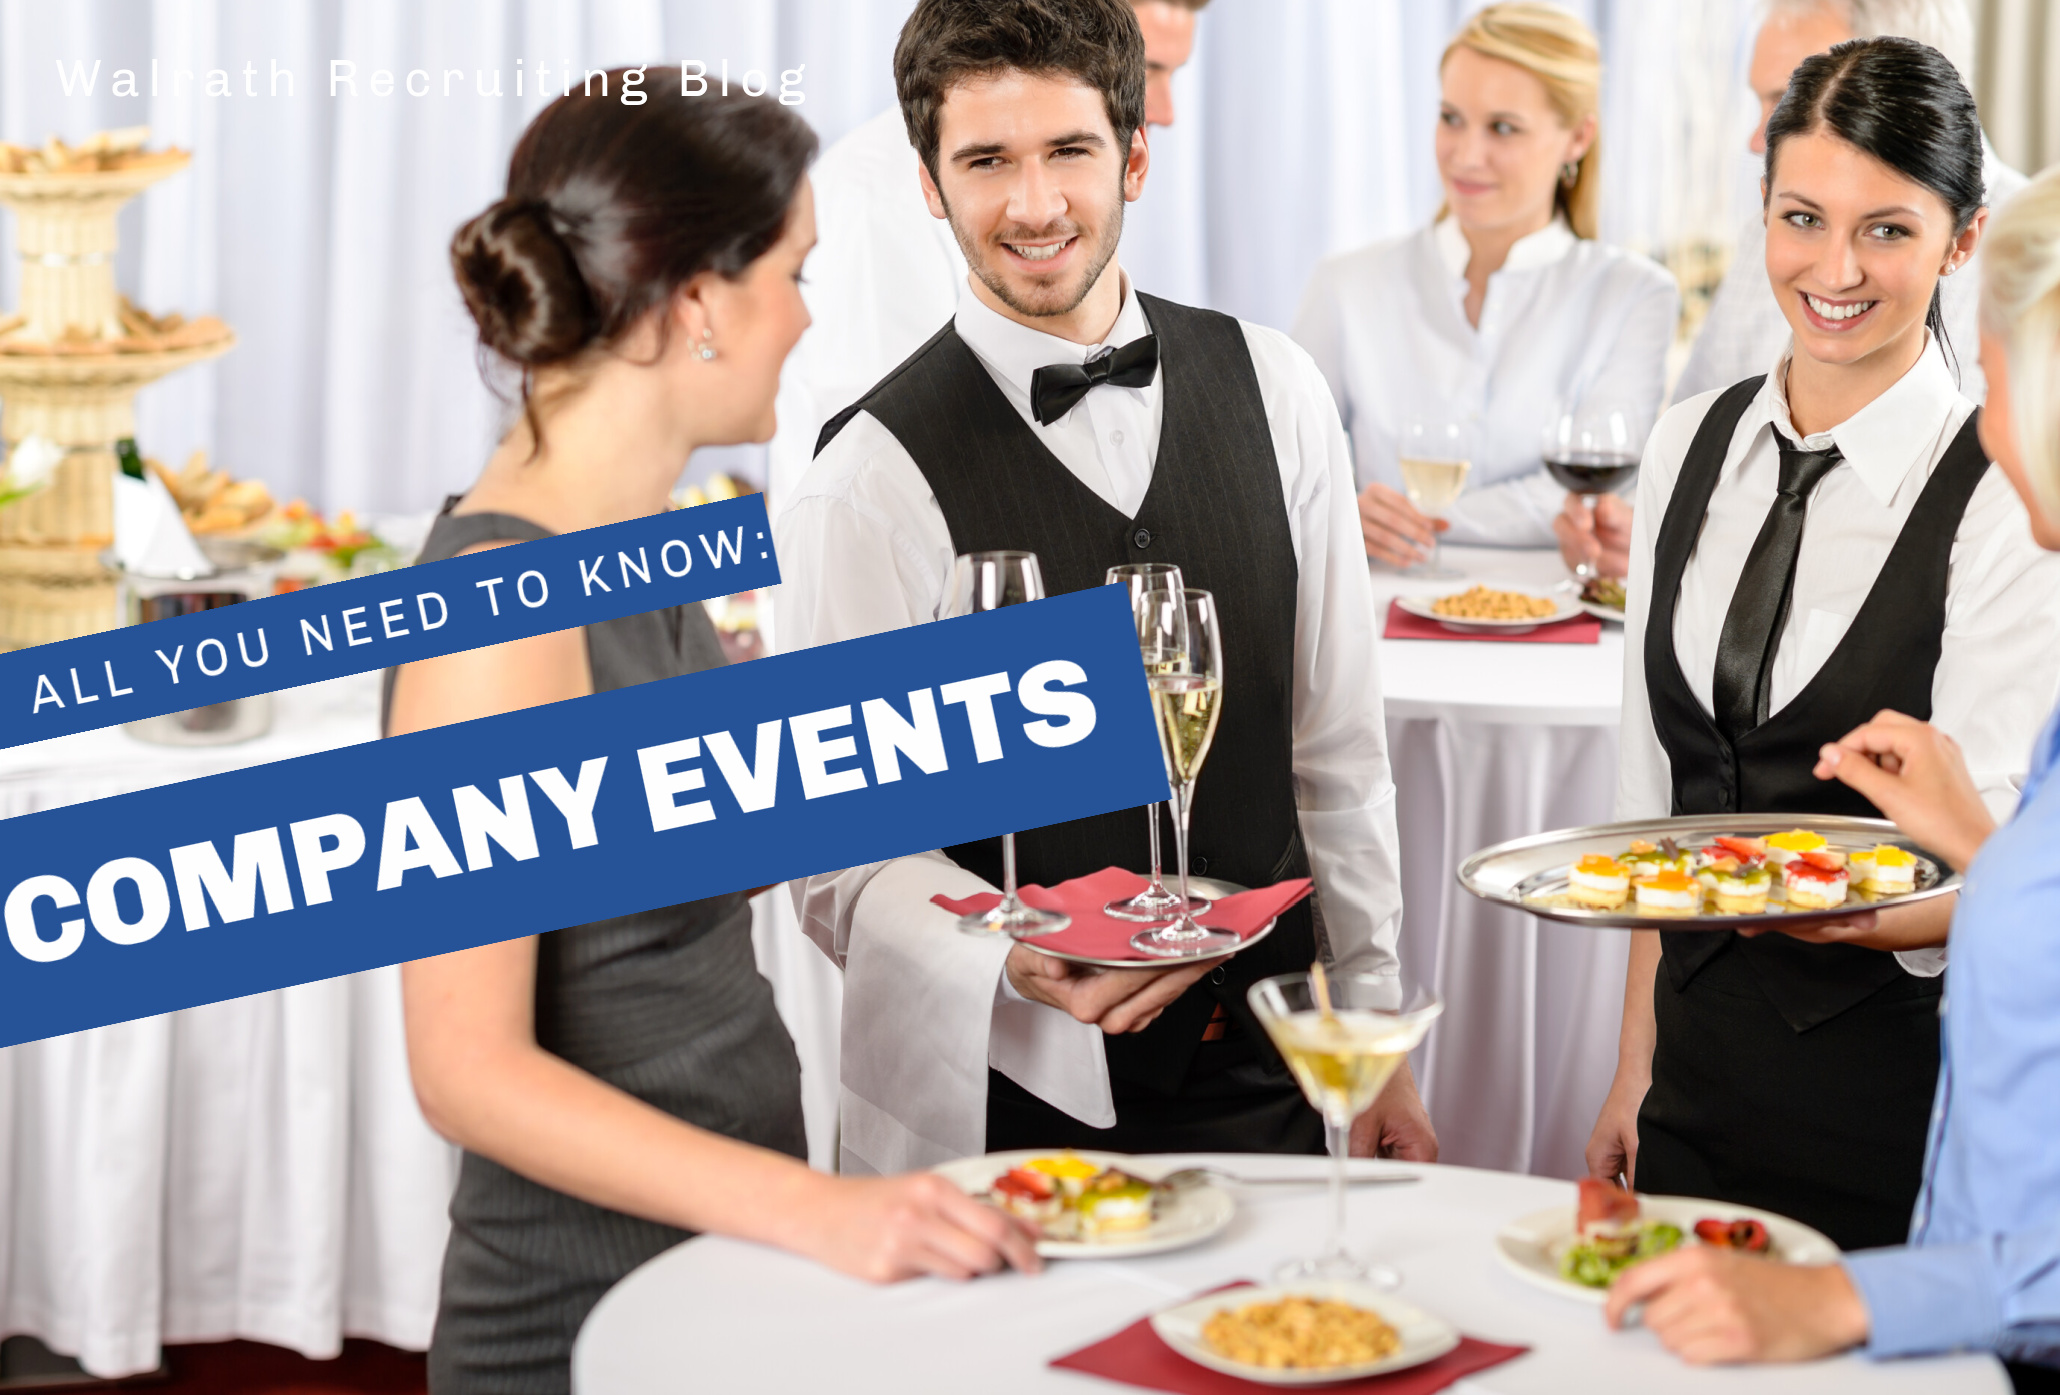 Check out these tips for attending company events!